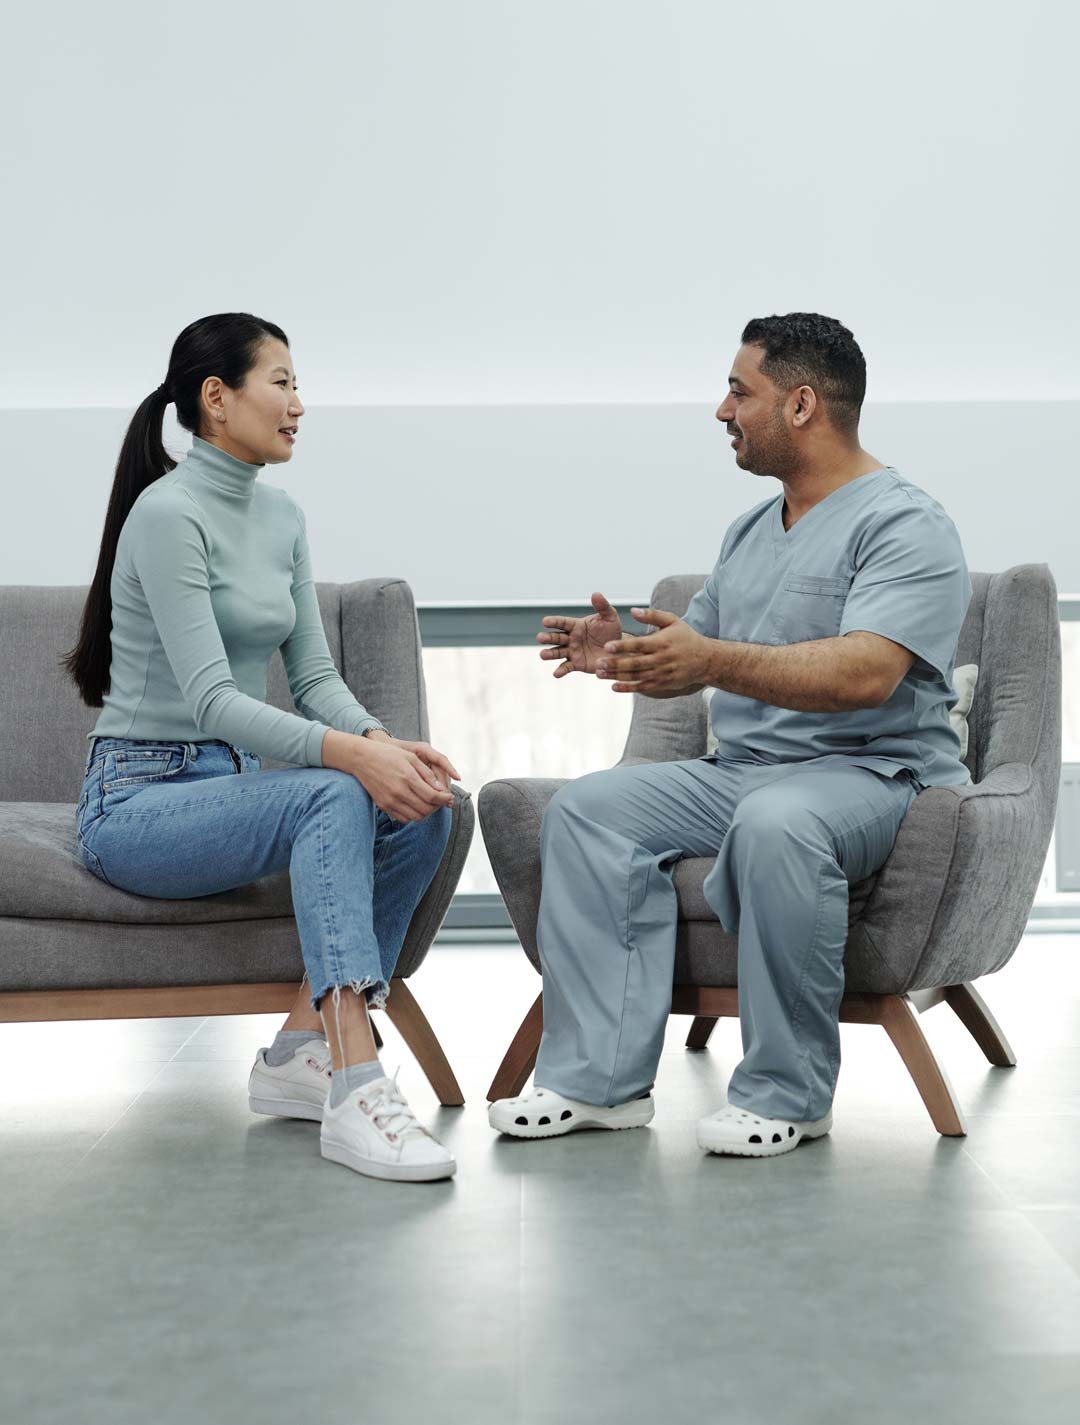 Two people in Medicare consultation